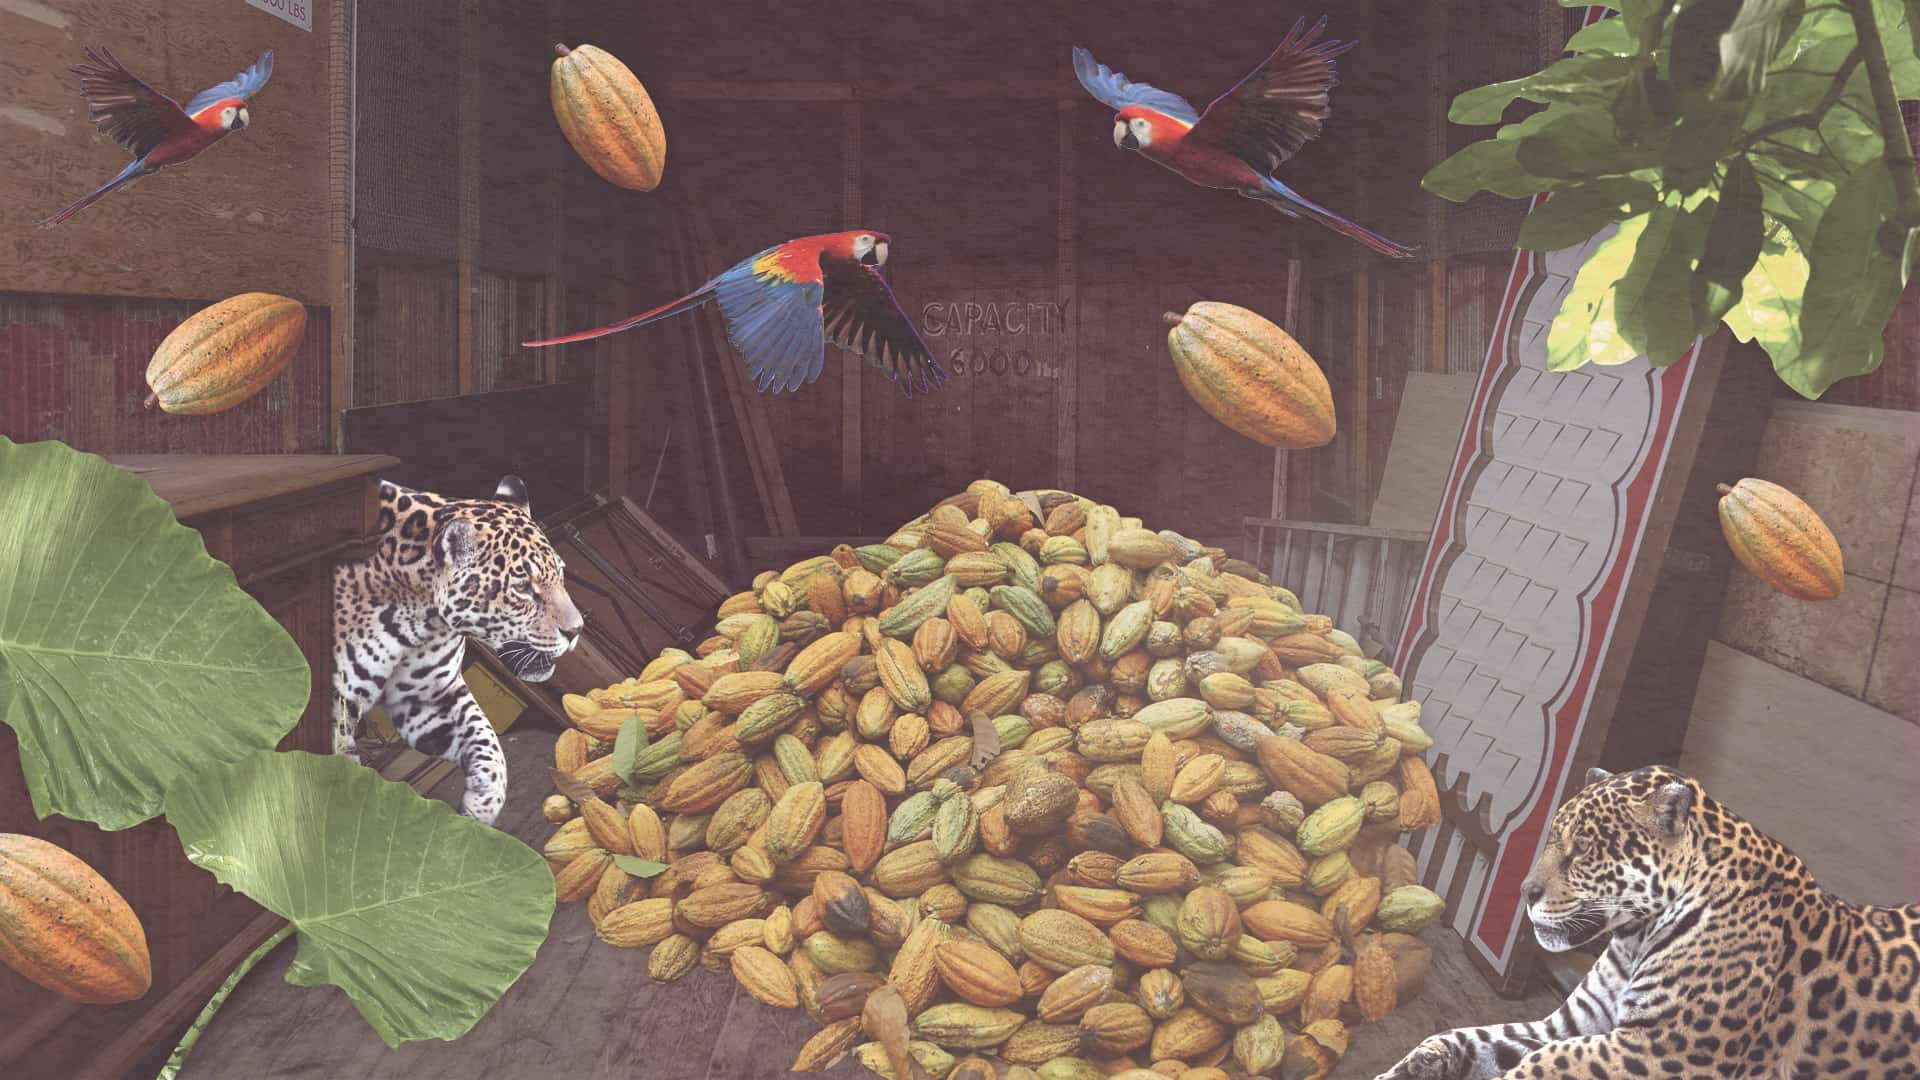 Image of an elevator with cacao beans, leopards, and exotic birds e